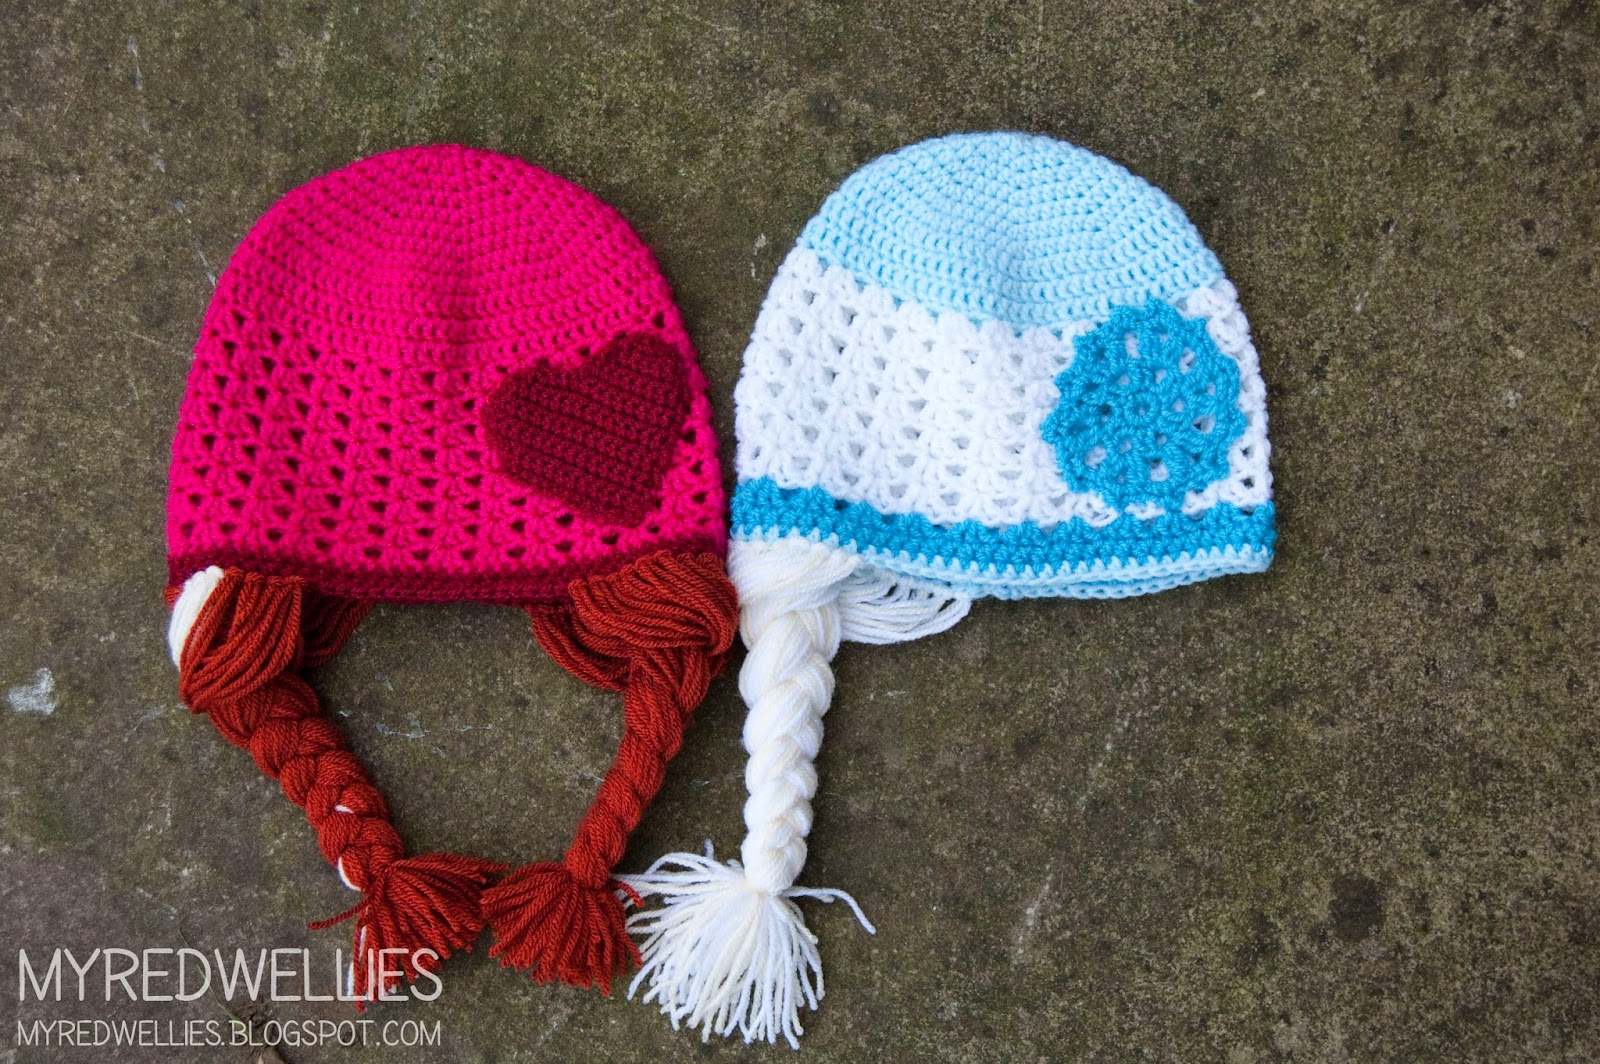 Anna Elsa Crochet Hats A Free Crochet Pattern My Red Wellies